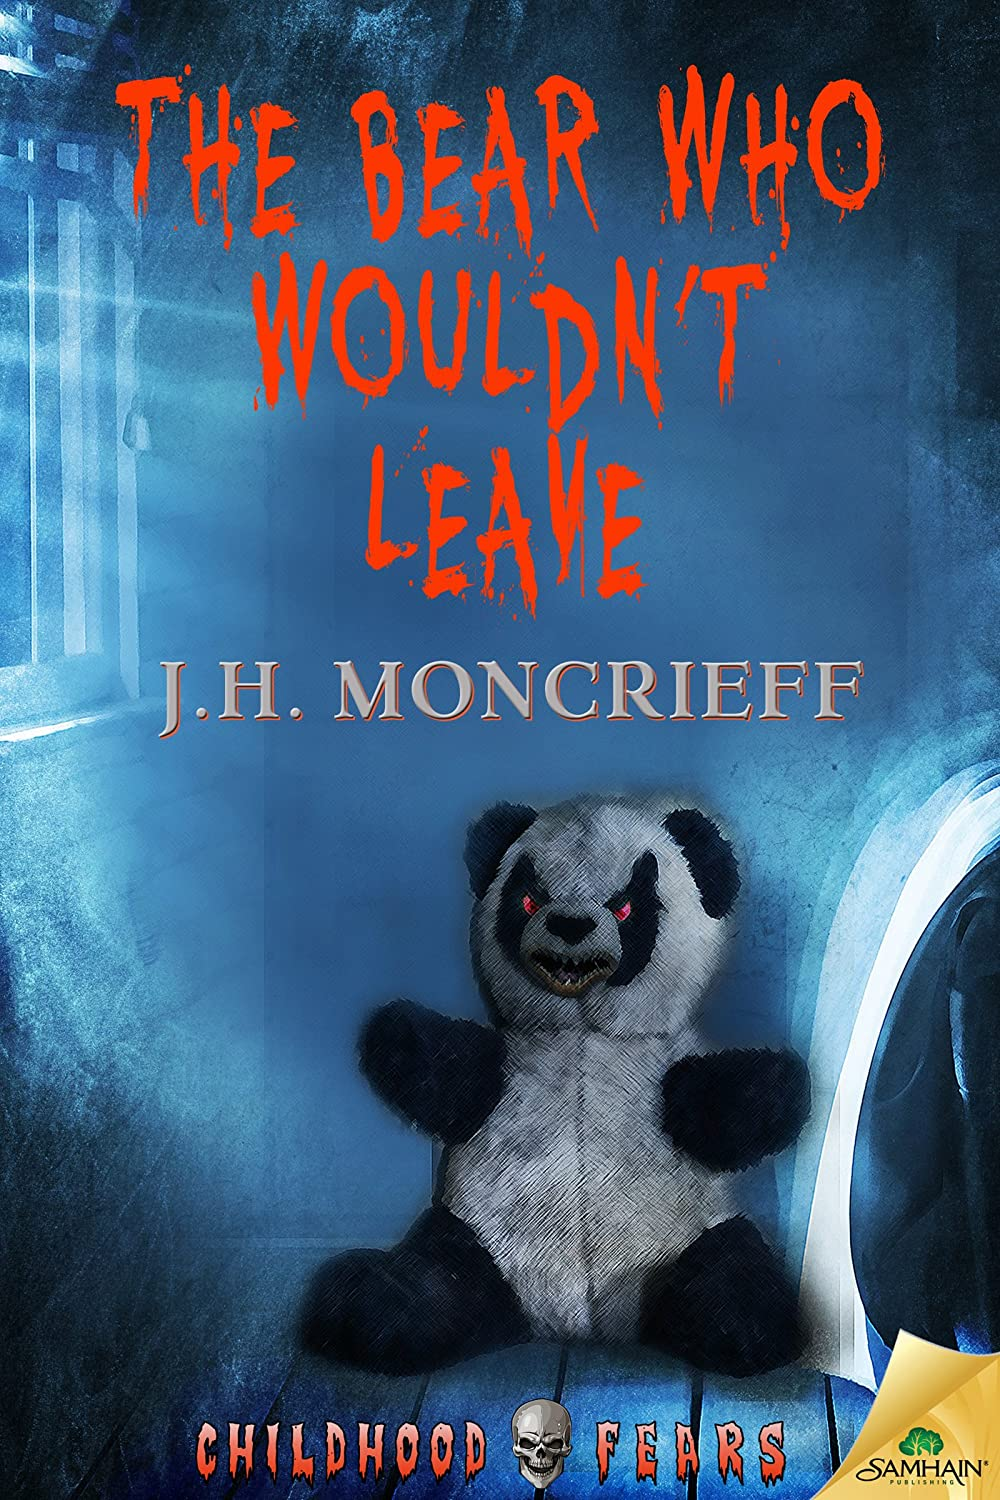 J.H. Moncrieff: Five Things I Learned Writing The Bear That Wouldn't Leave